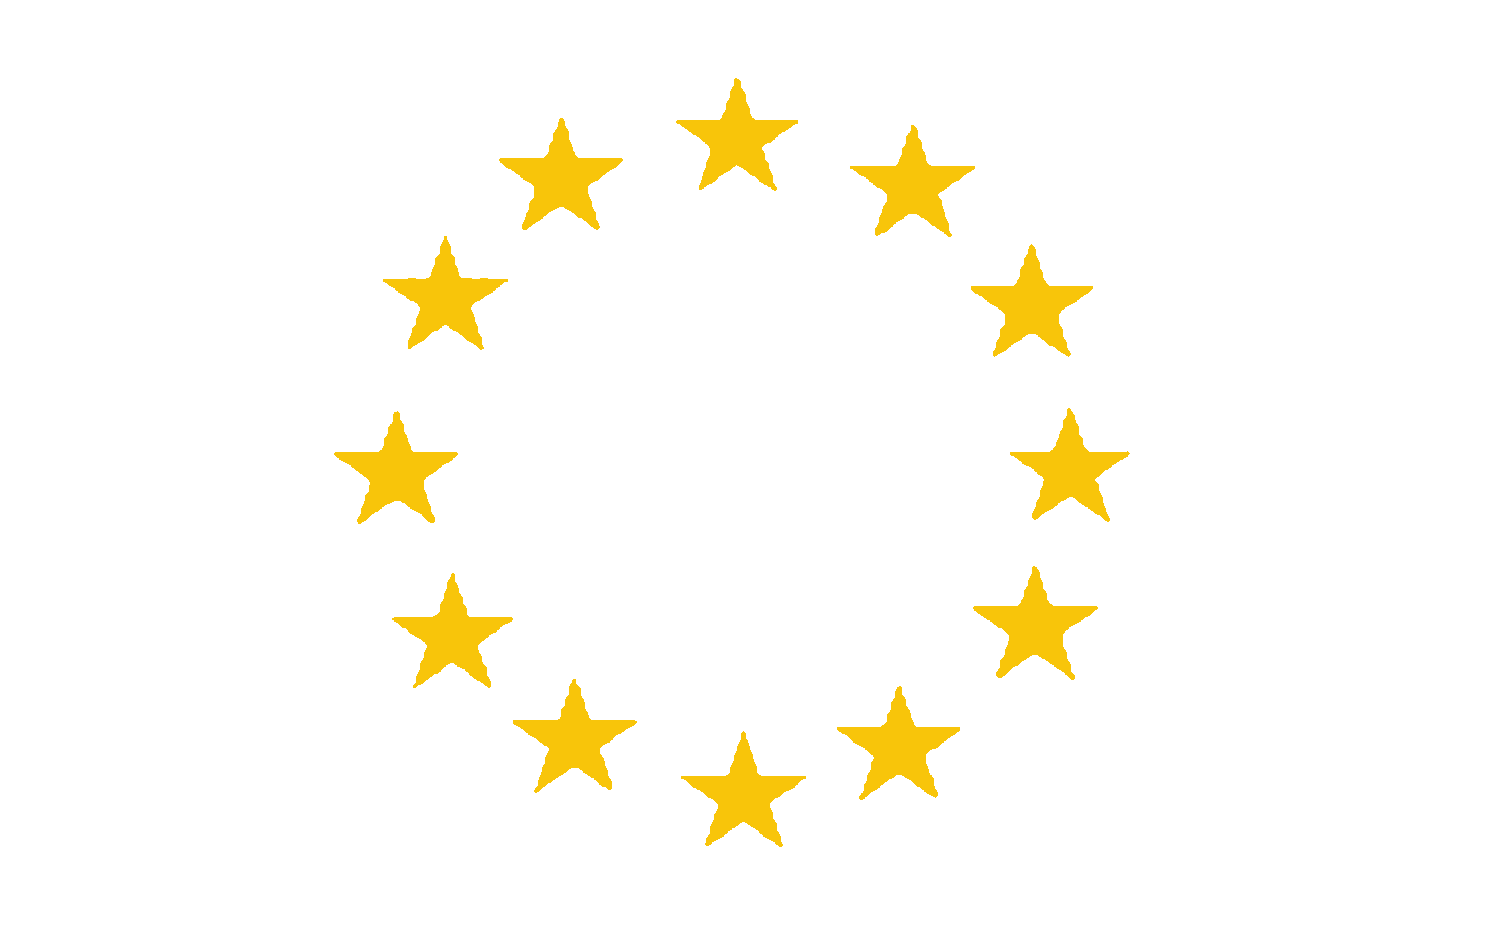 Stars border png. Images free star clipart